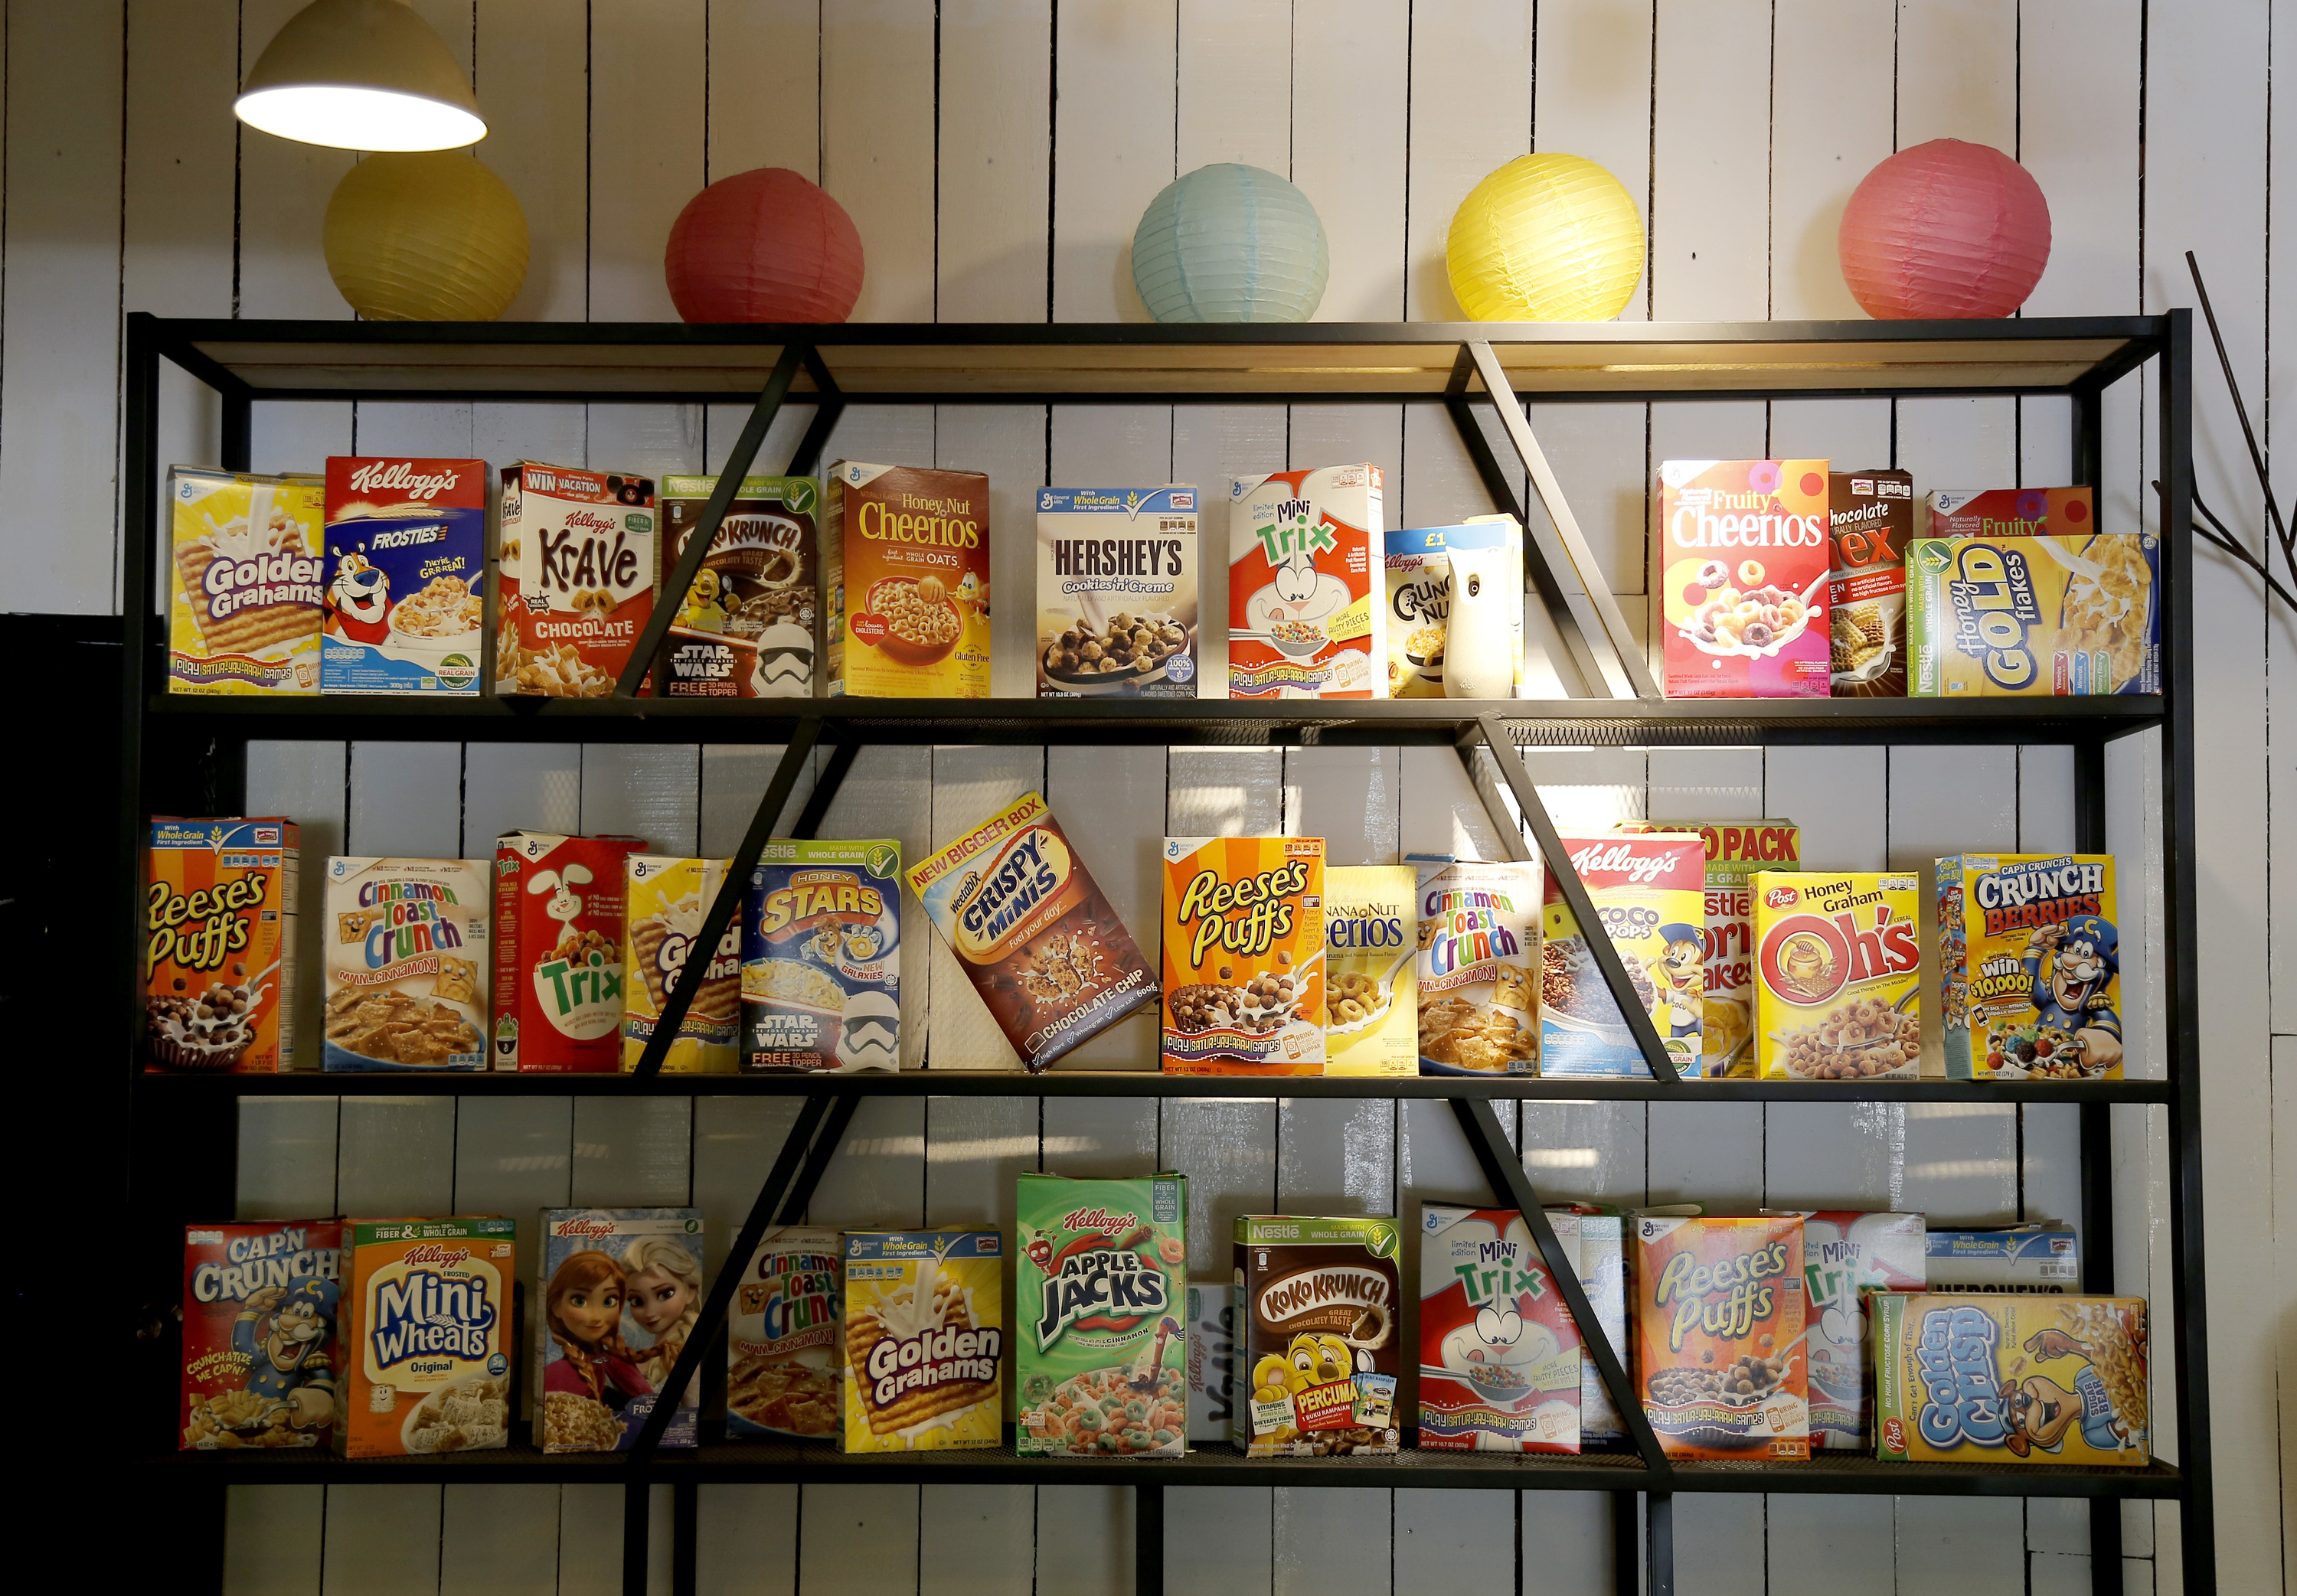 Like Cereals-ly